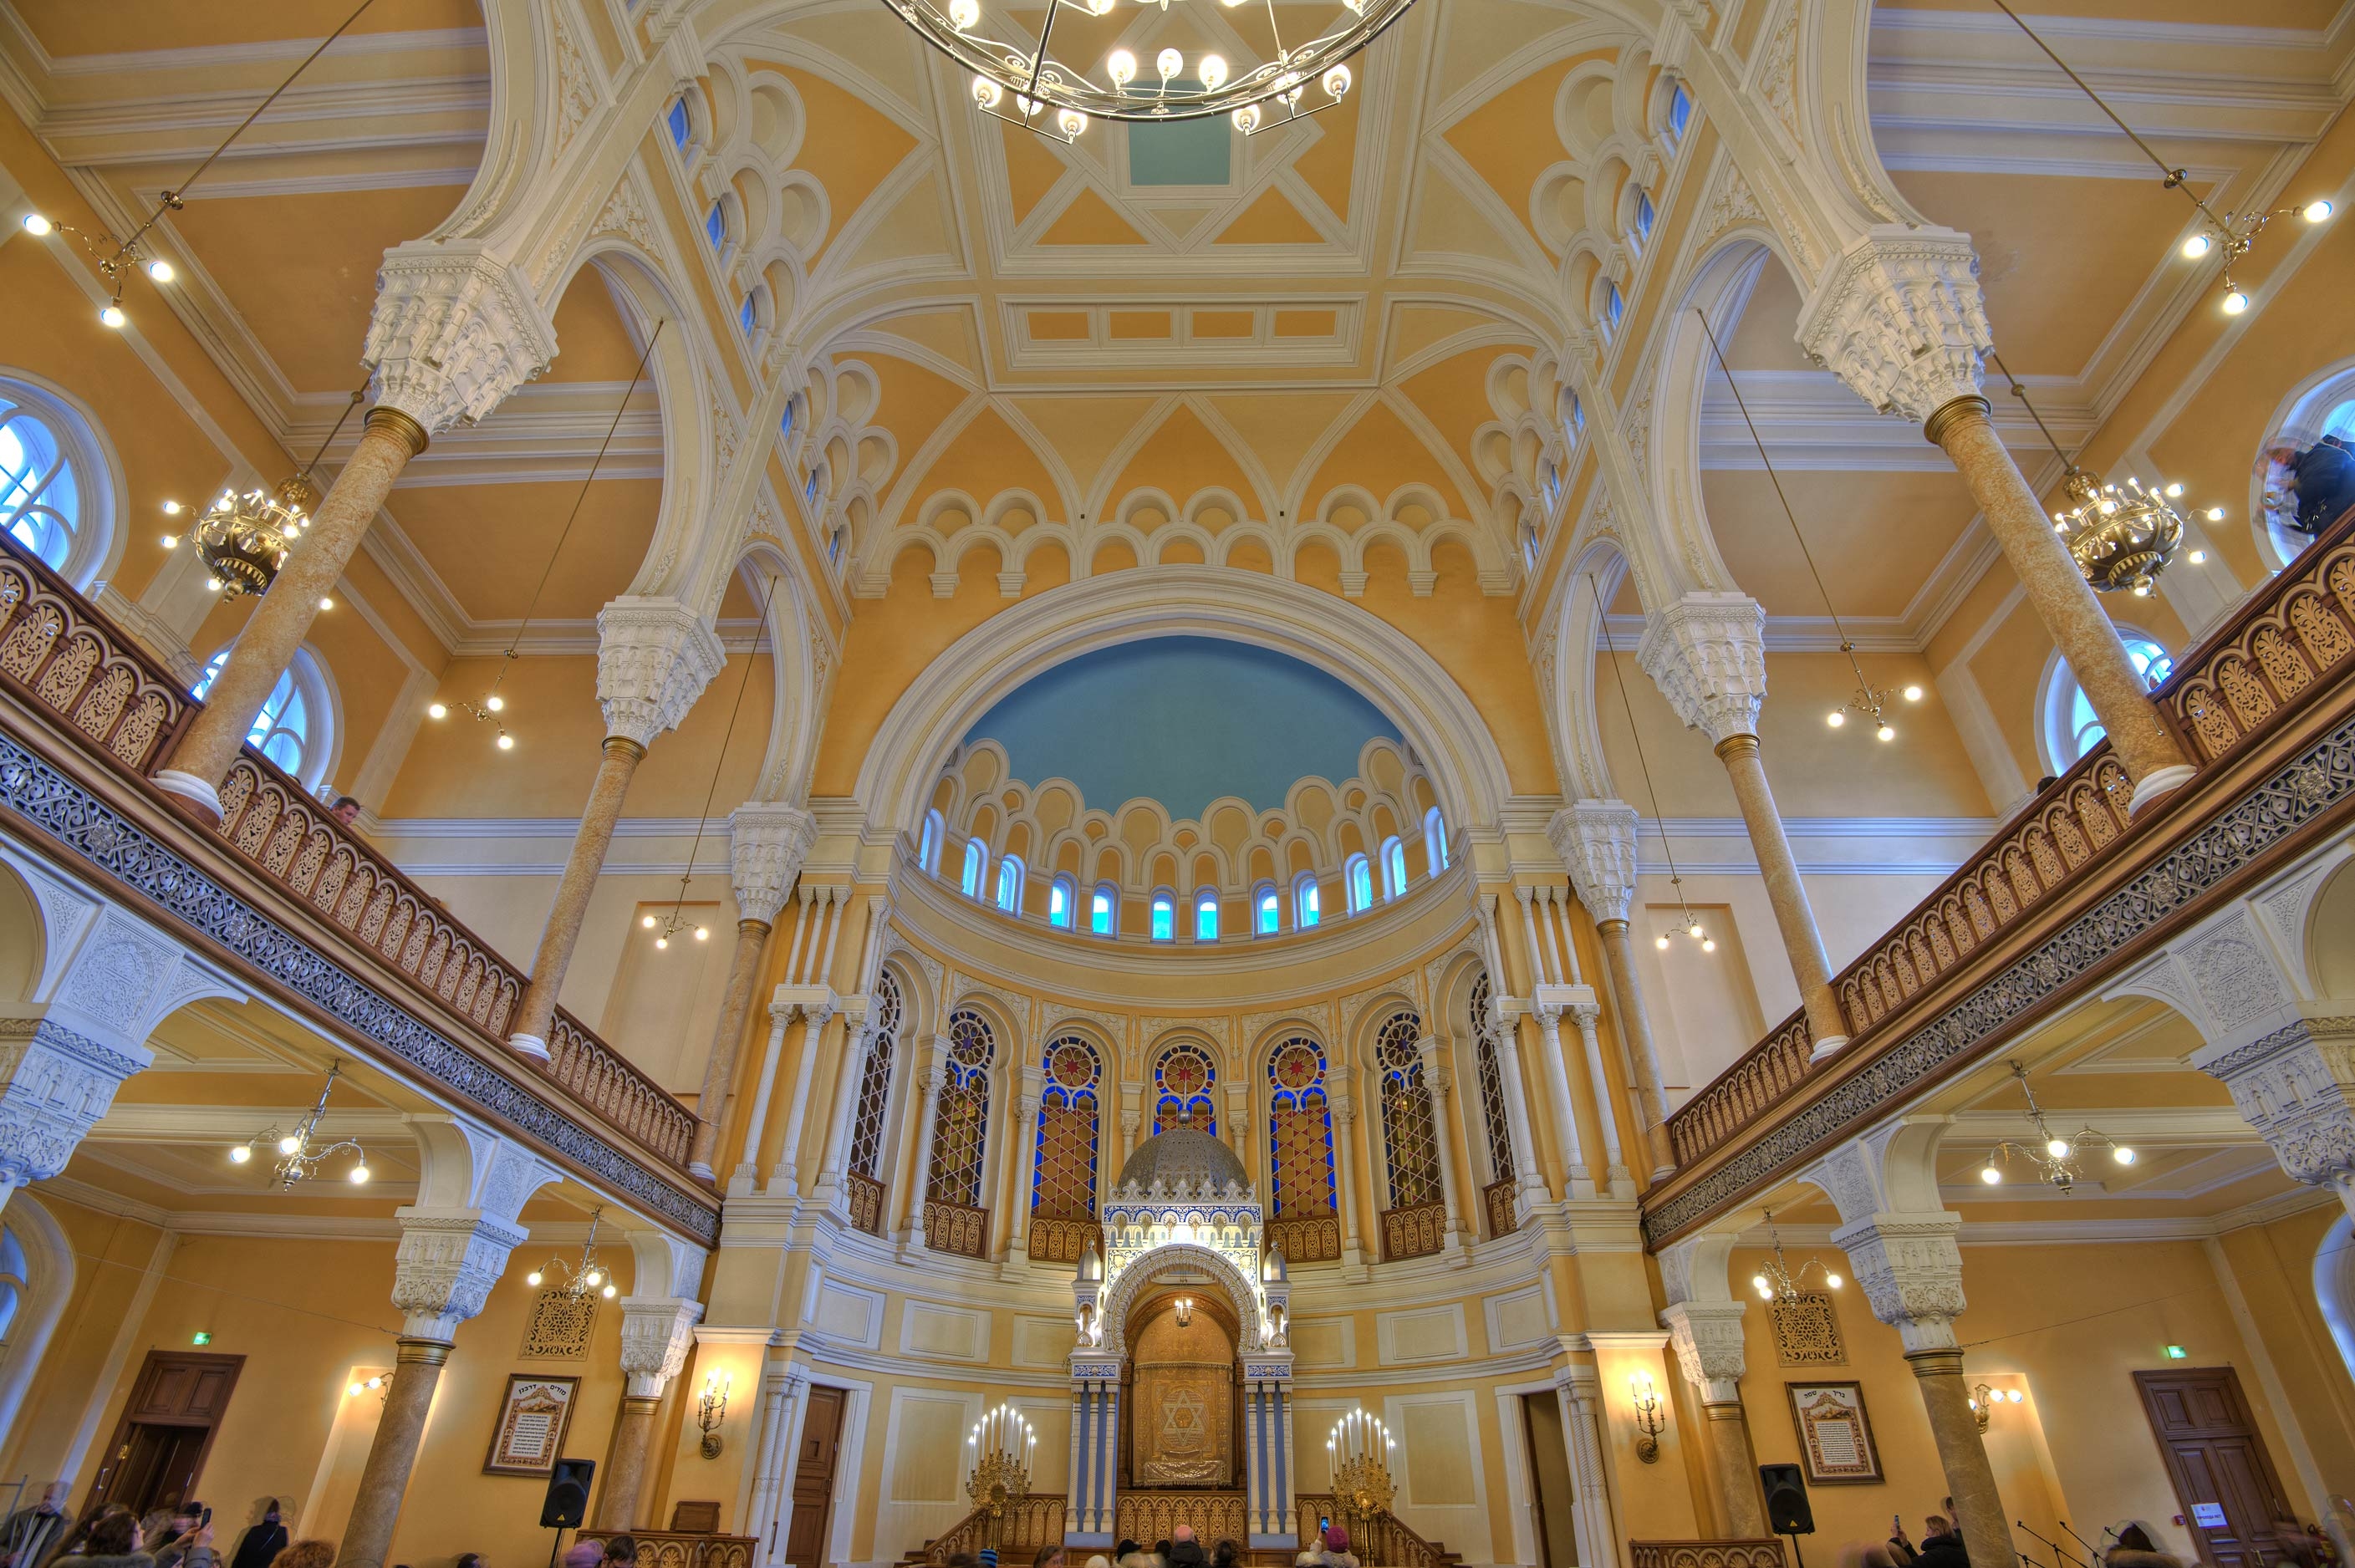 Vaults of Main Prayer Hall of Grand Choral Synagogue. St.Petersburg, Russia